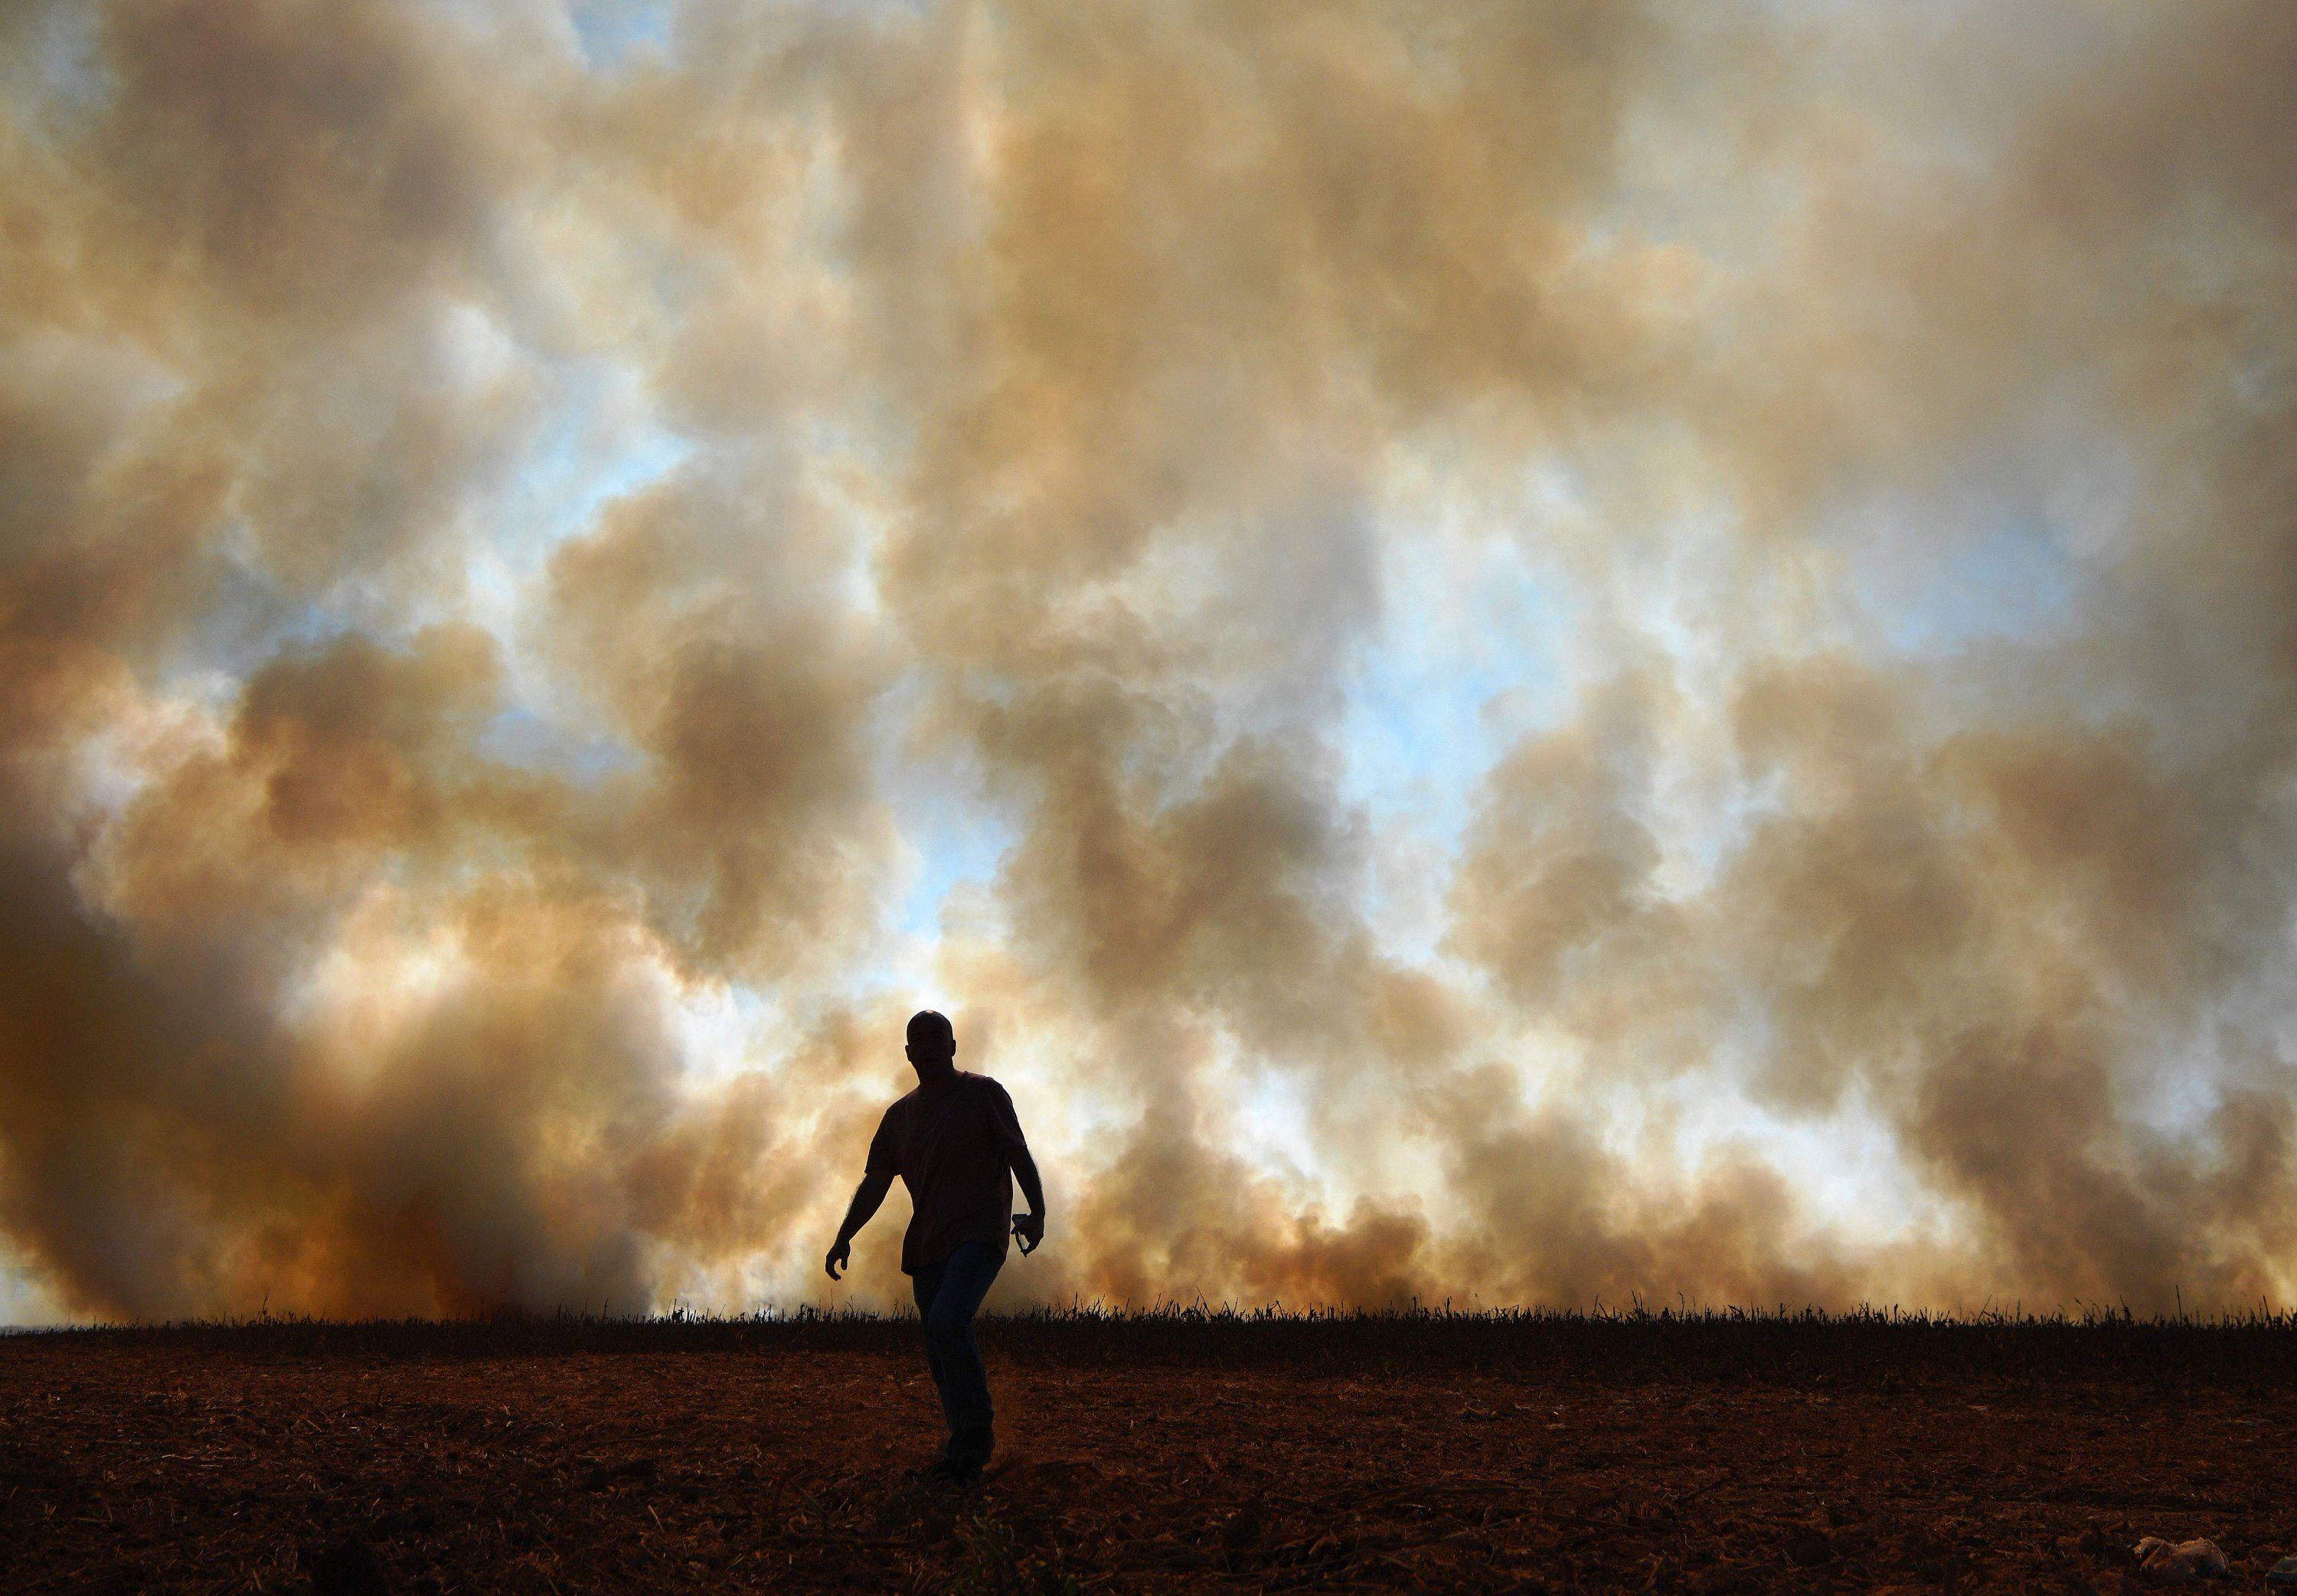 In this file photo taken on Aug. 9, 2020, a man is seen in front of smoke rising from an illegally lit fire on a maize field that borders a rainforest reserve, in Sinop, Mato Grosso state, Brazil. (AFP Photo)